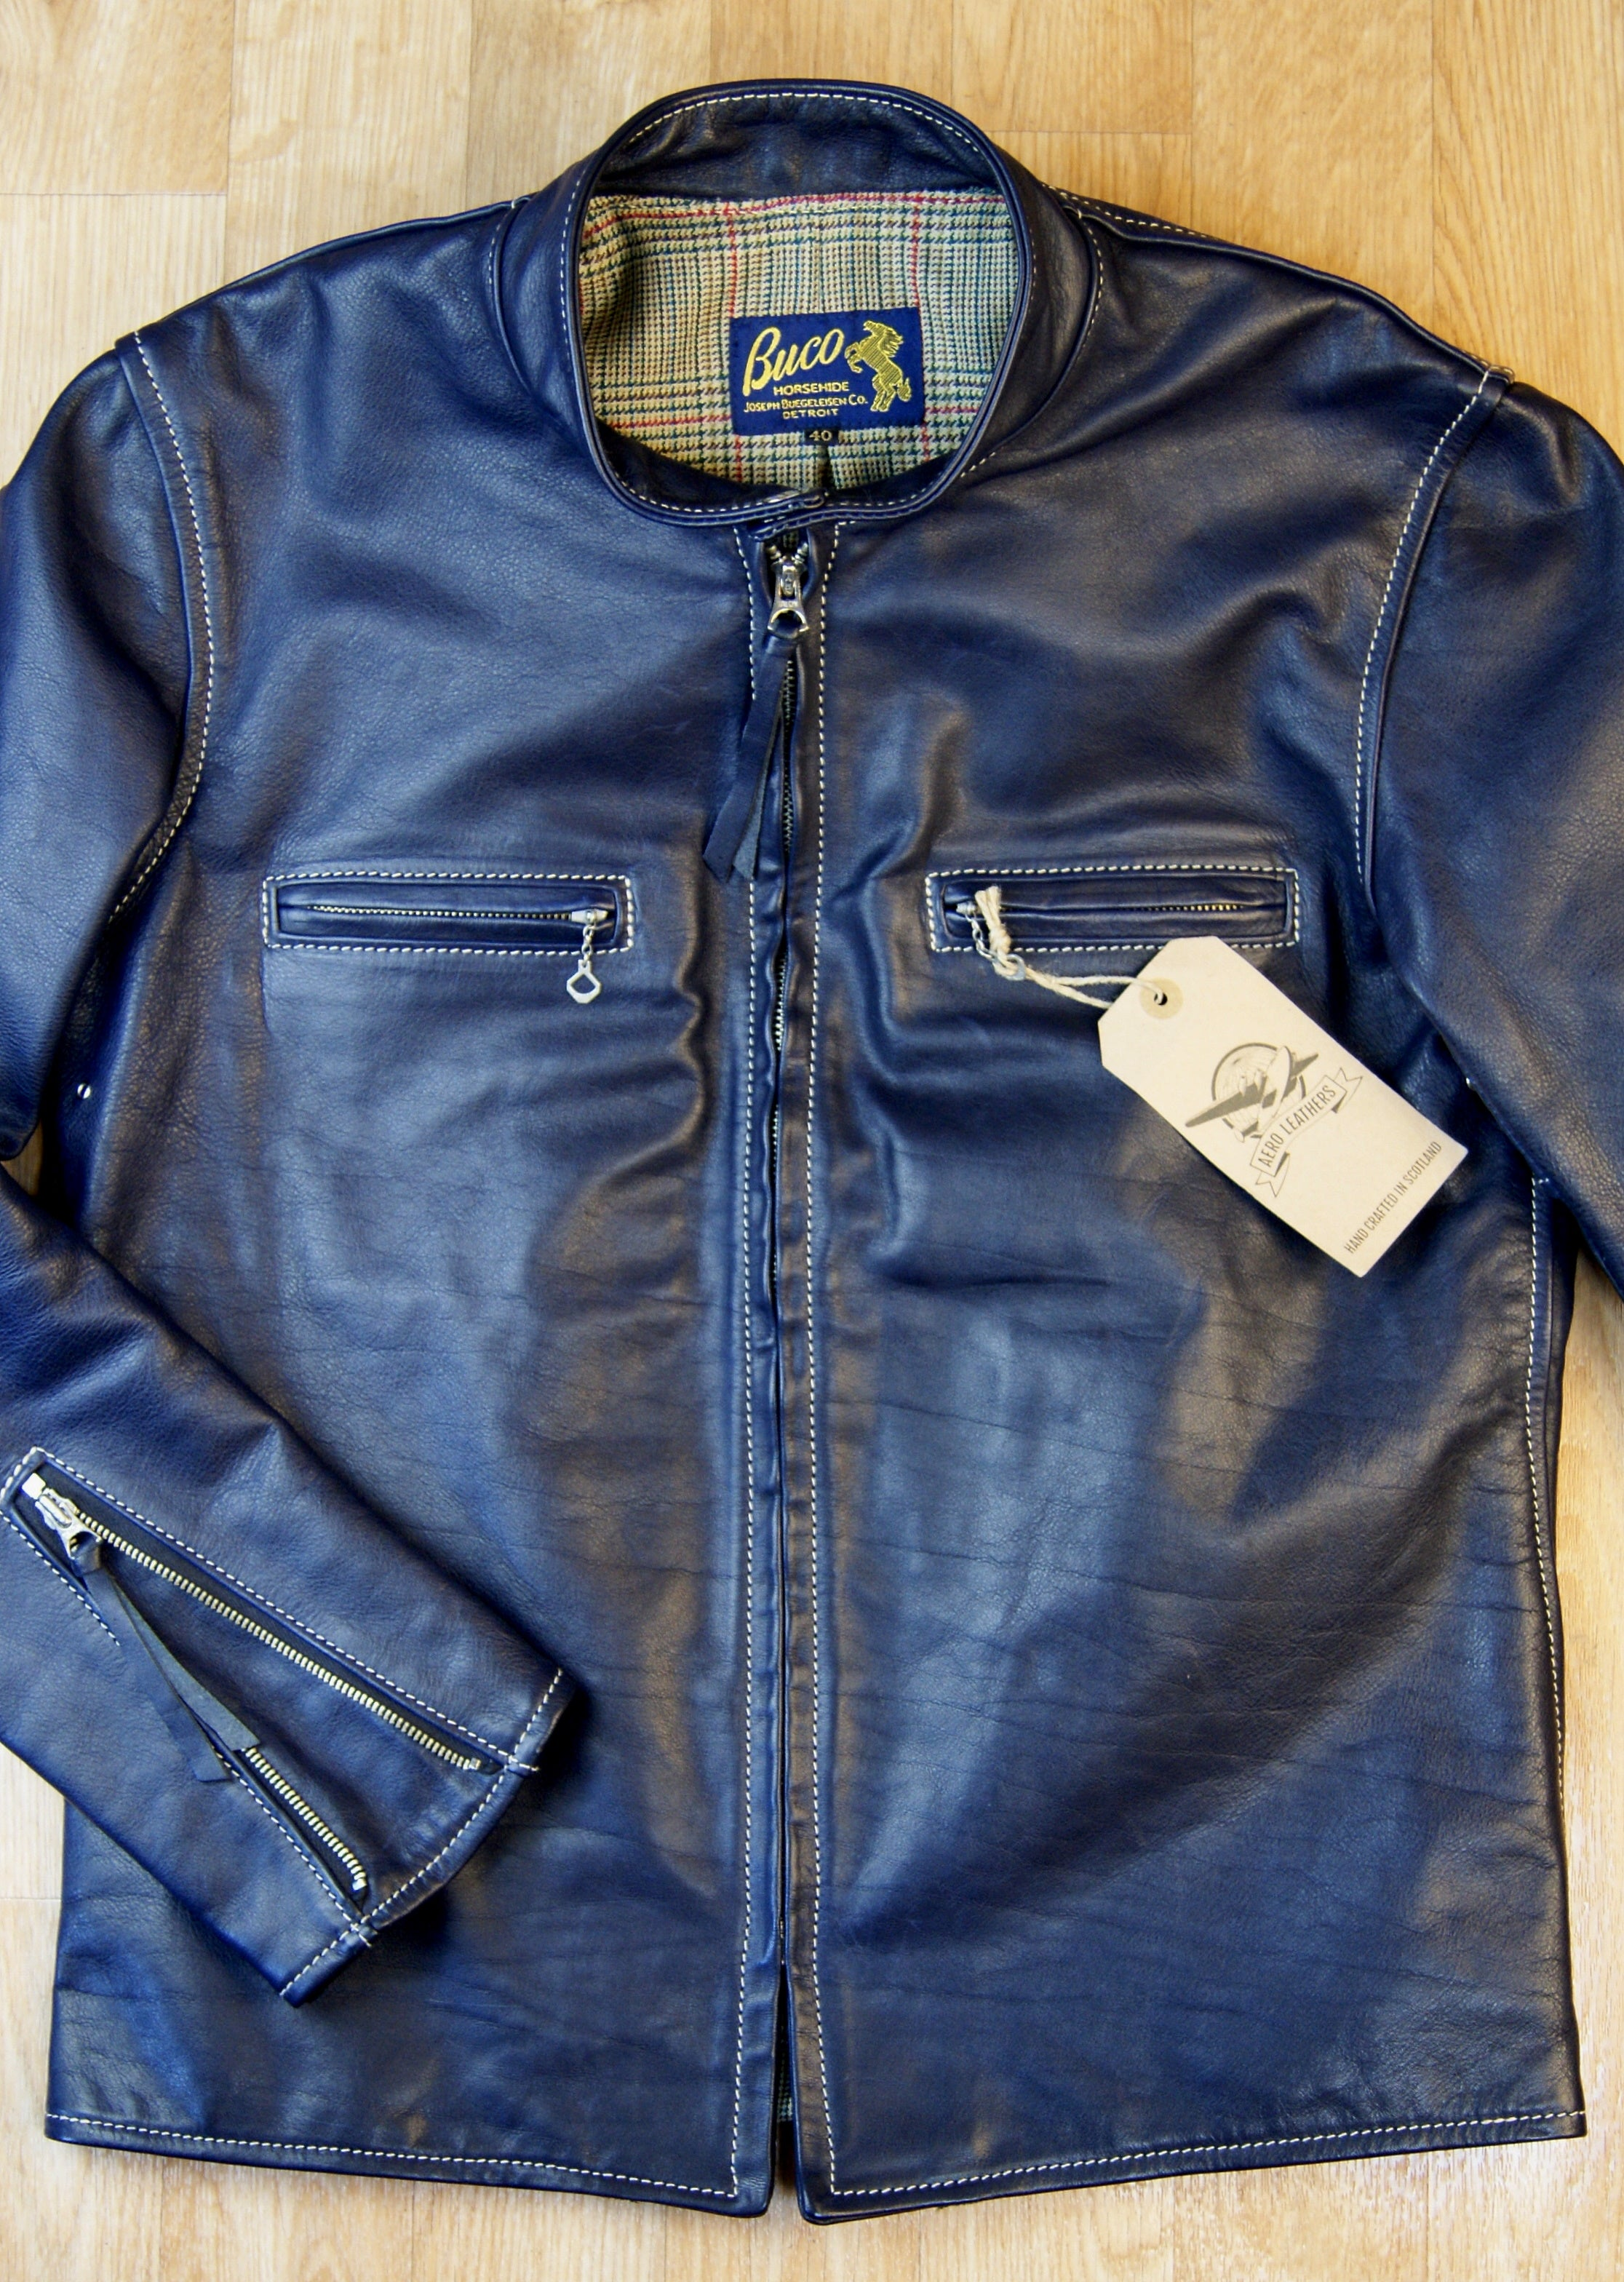 Aero Board Racer, size 40, Blue Vicenza Horsehide